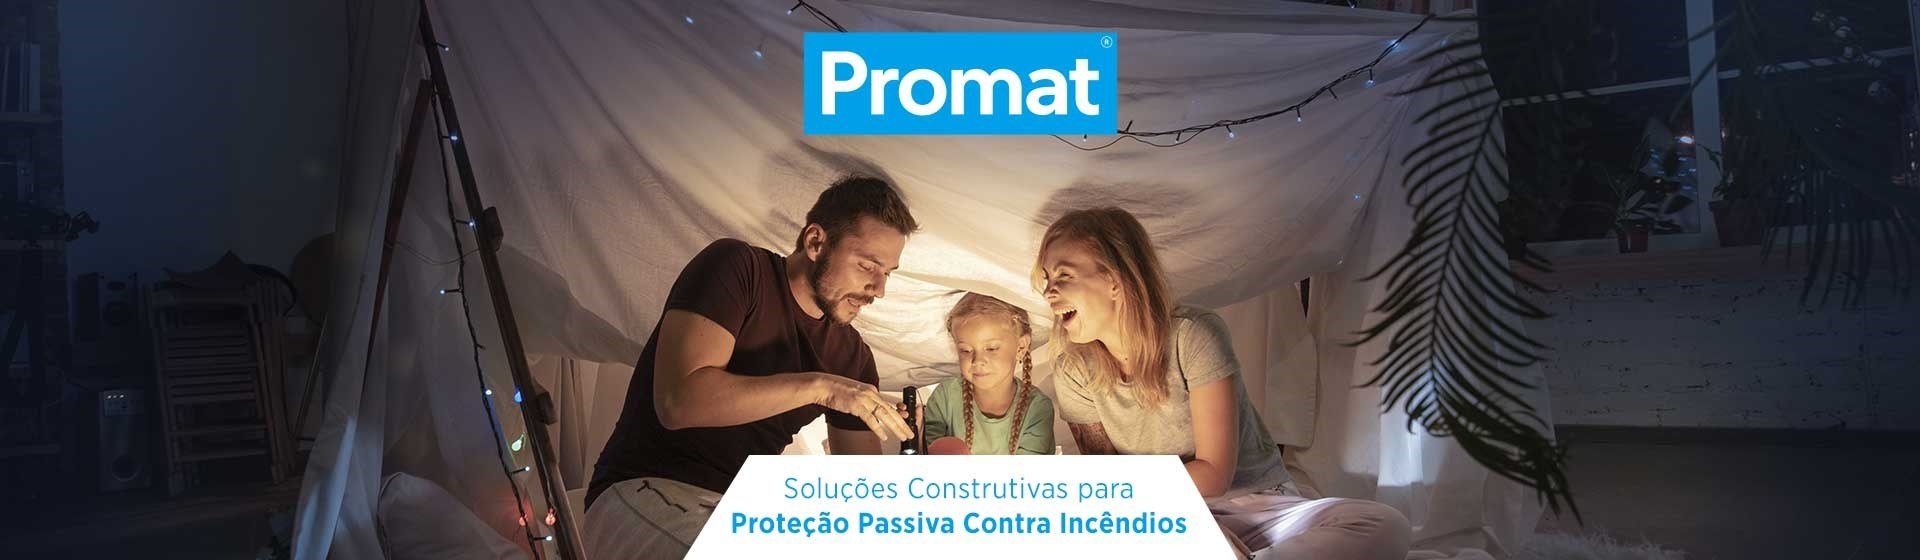 banner home promat